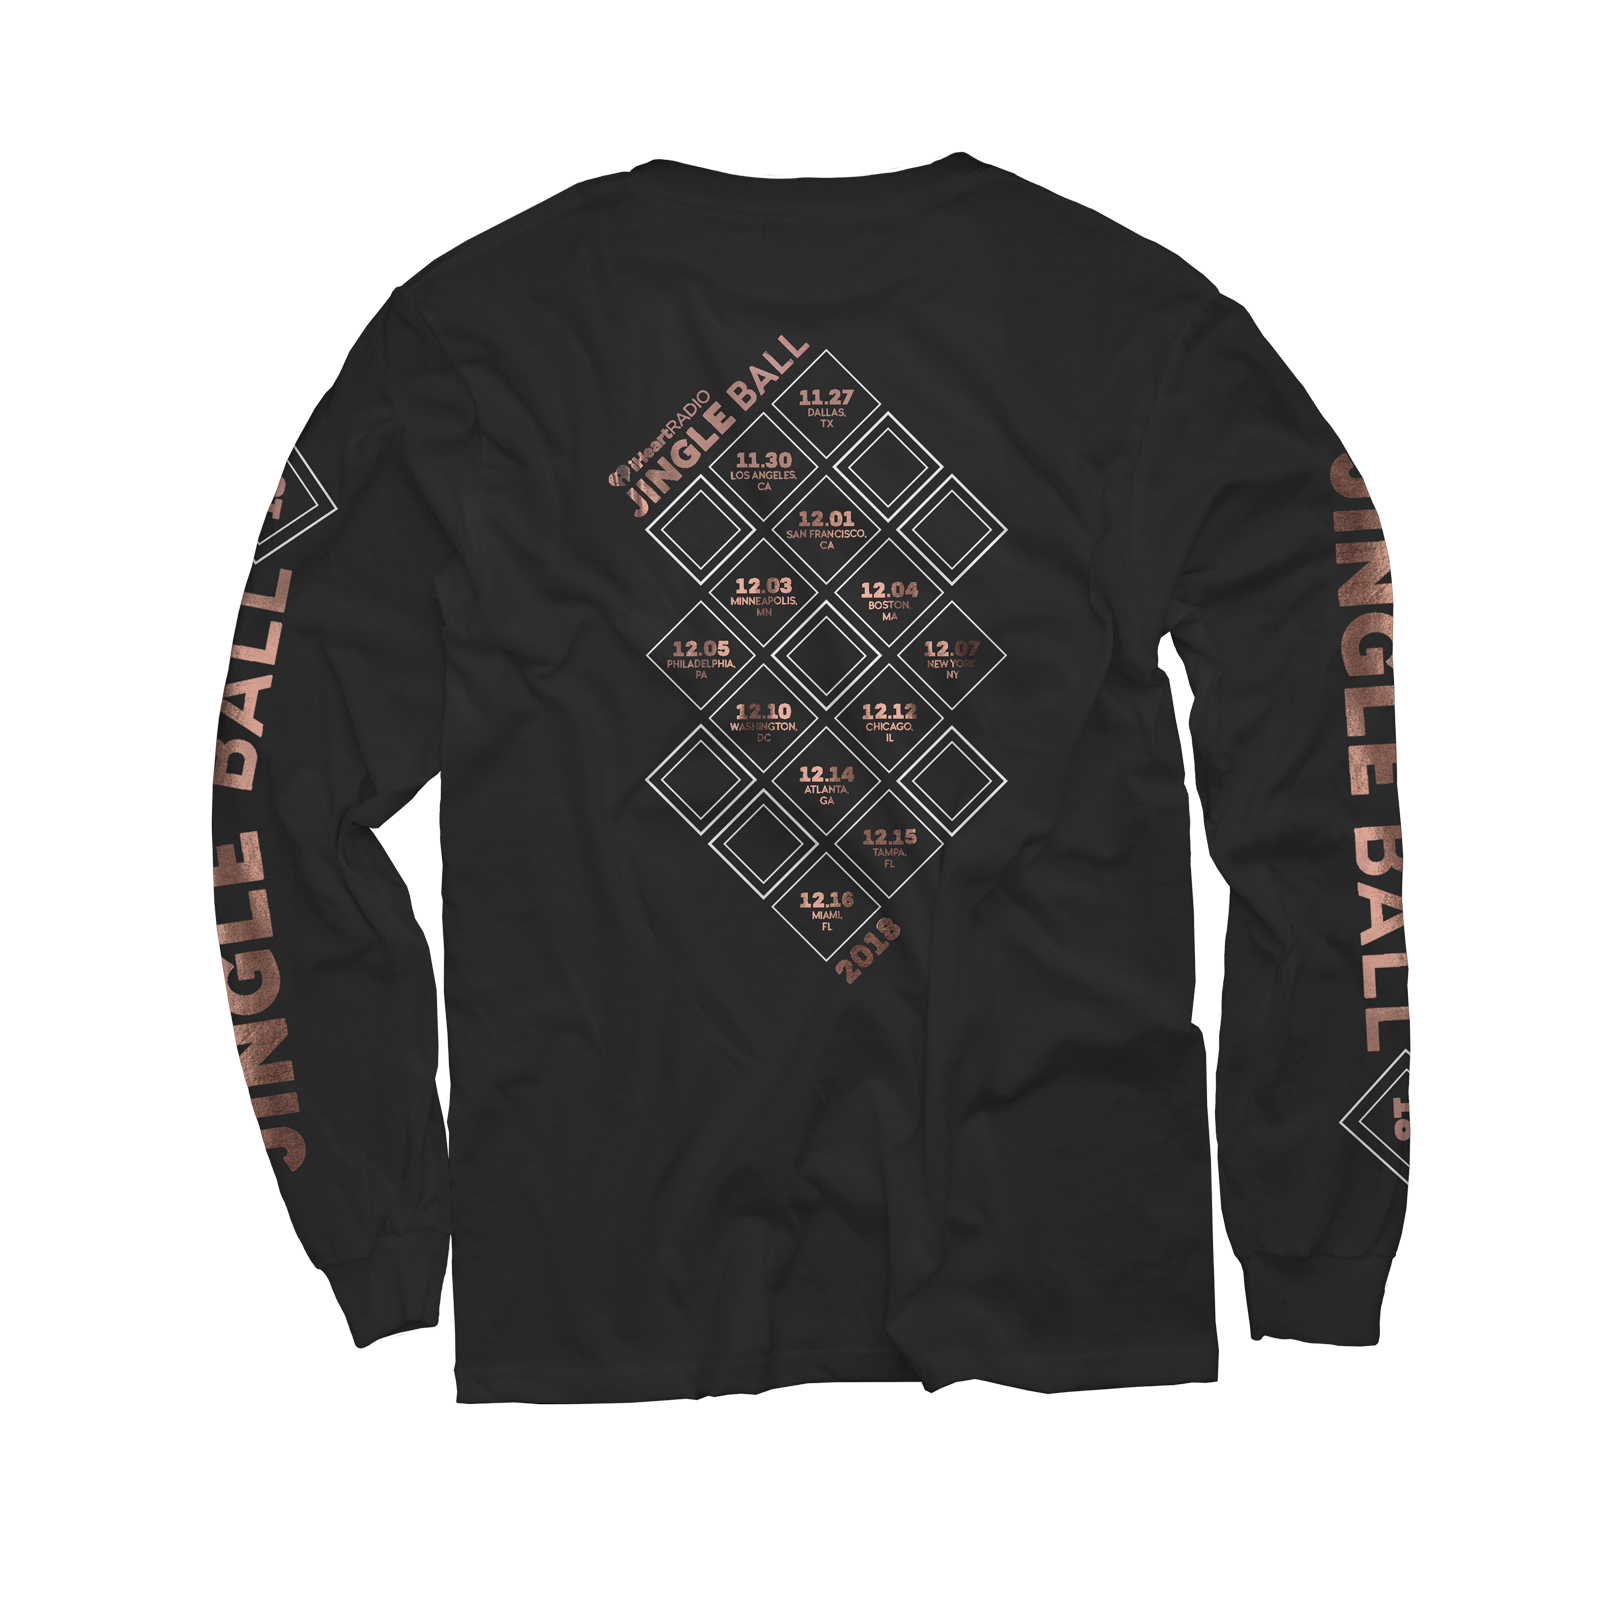 2018 Jingle Ball Tour Long Sleeve